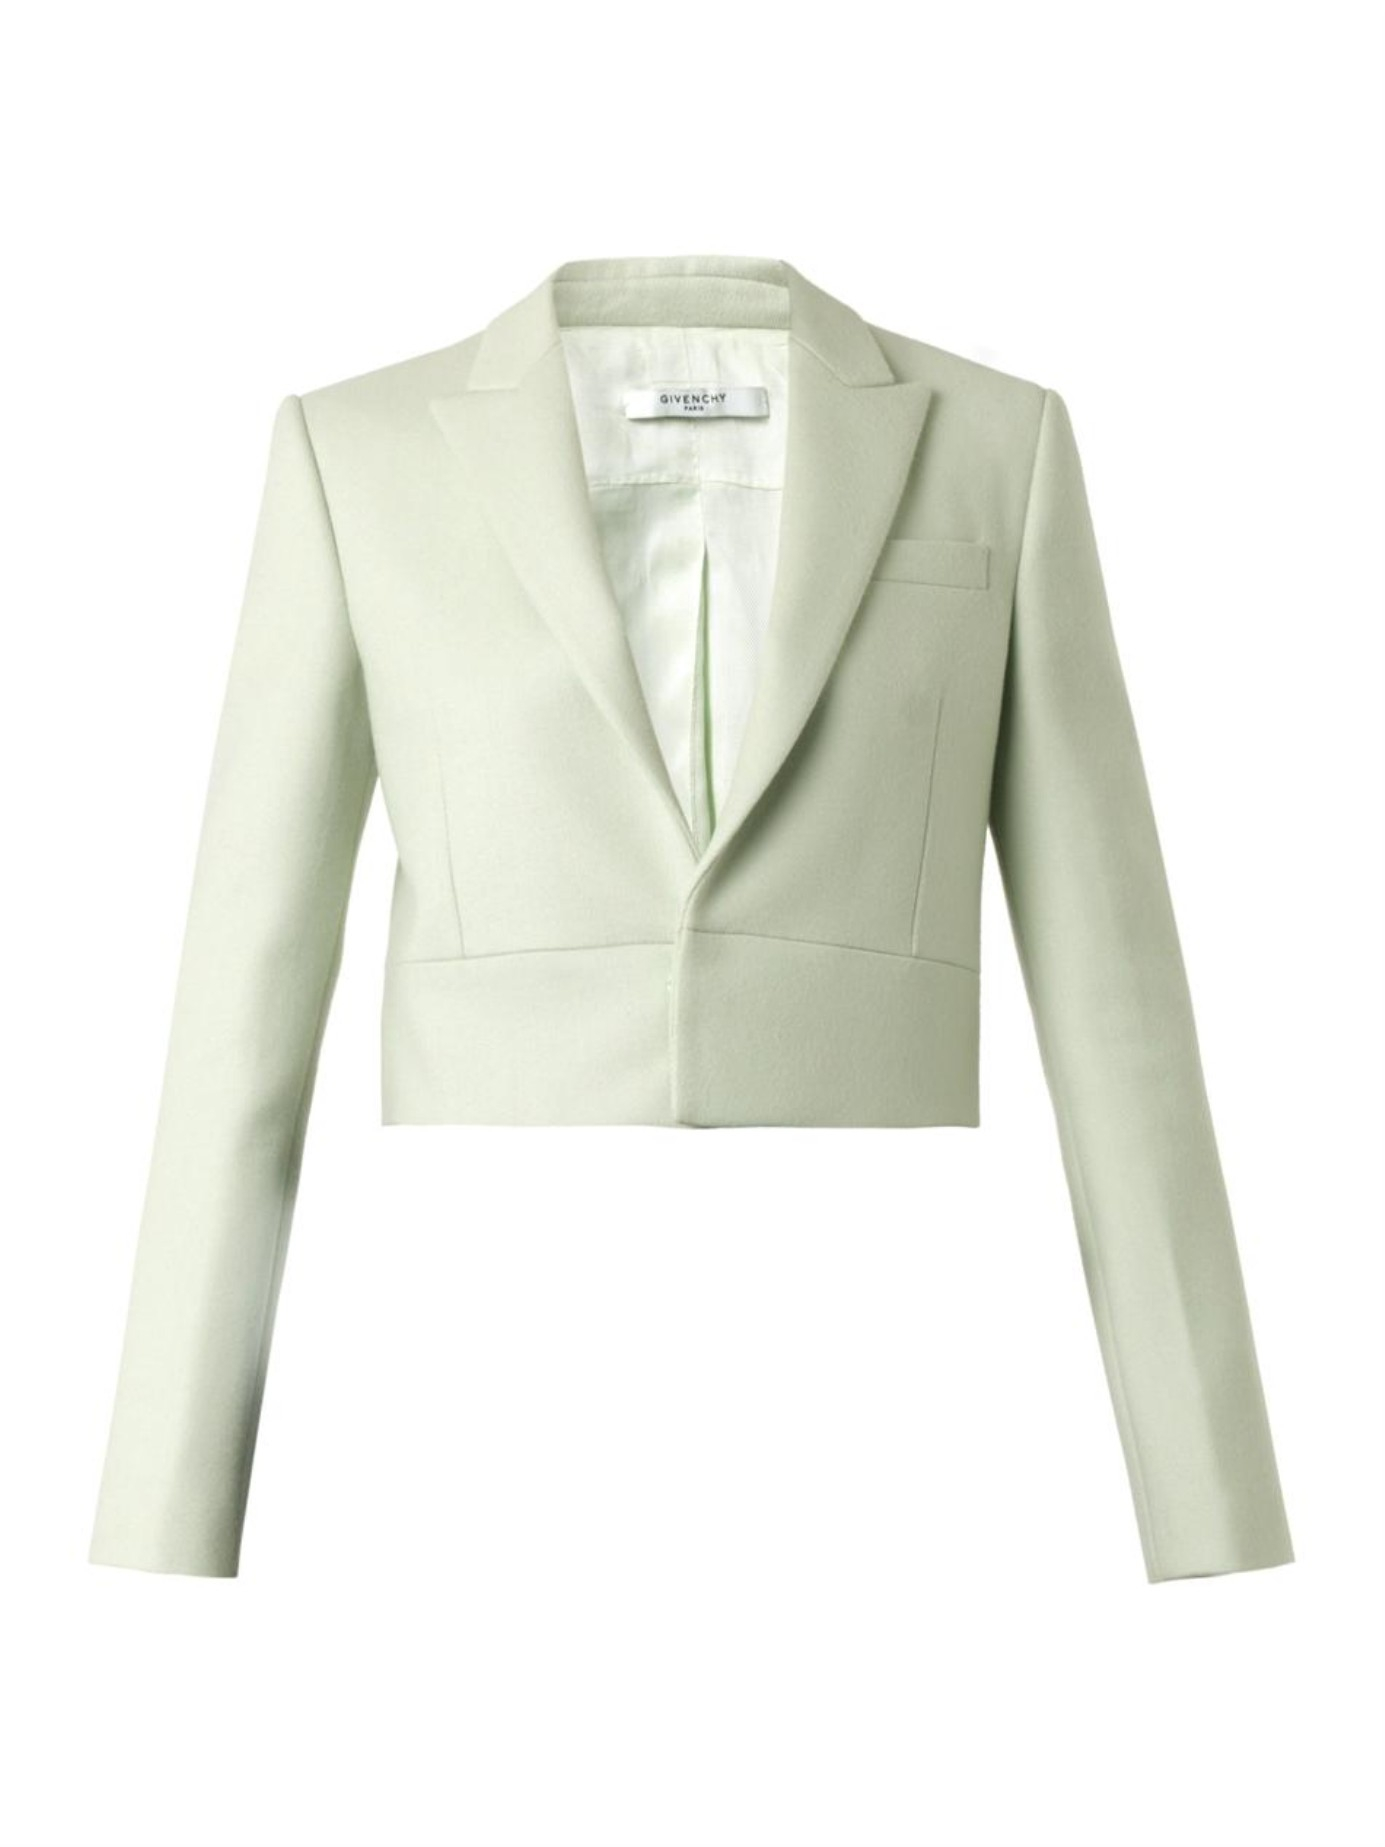 31b21992f6d2 Givenchy Neoprene-panel Wool-blend Cropped Jacket in Green - Lyst